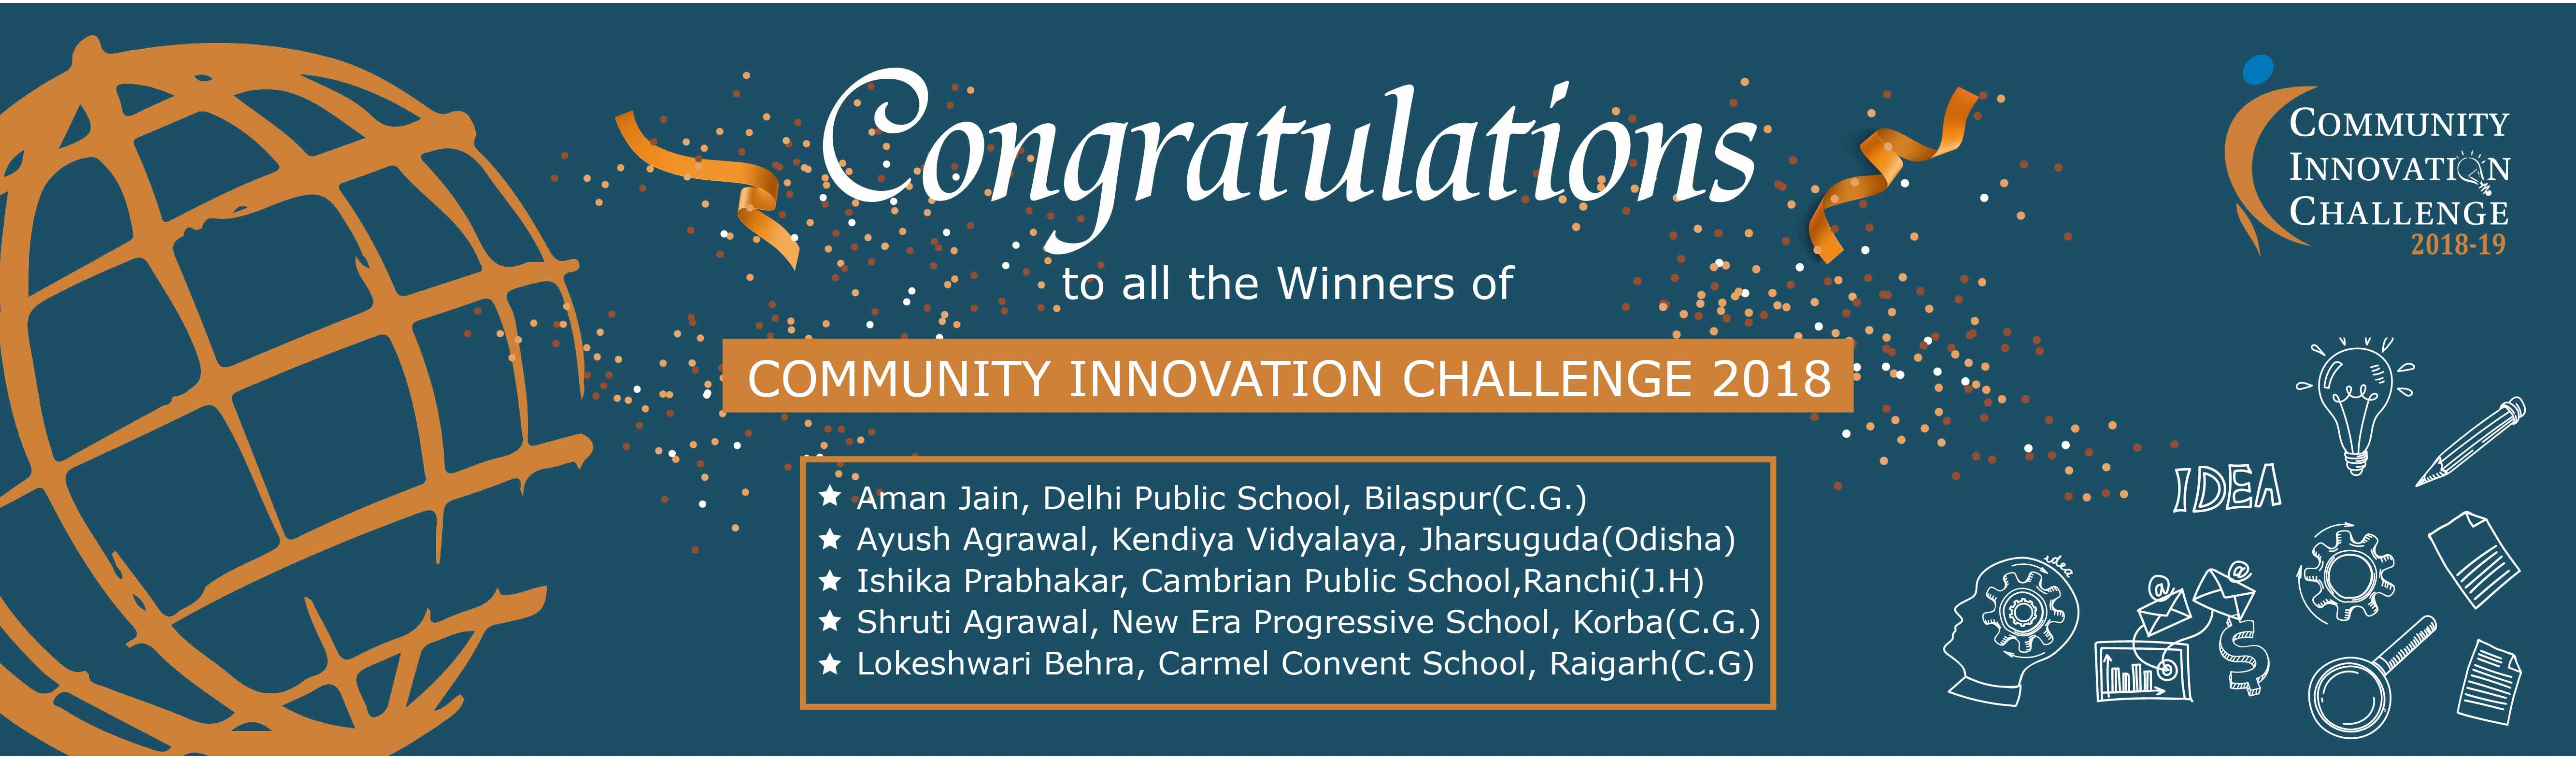 Community Innovation Challenge